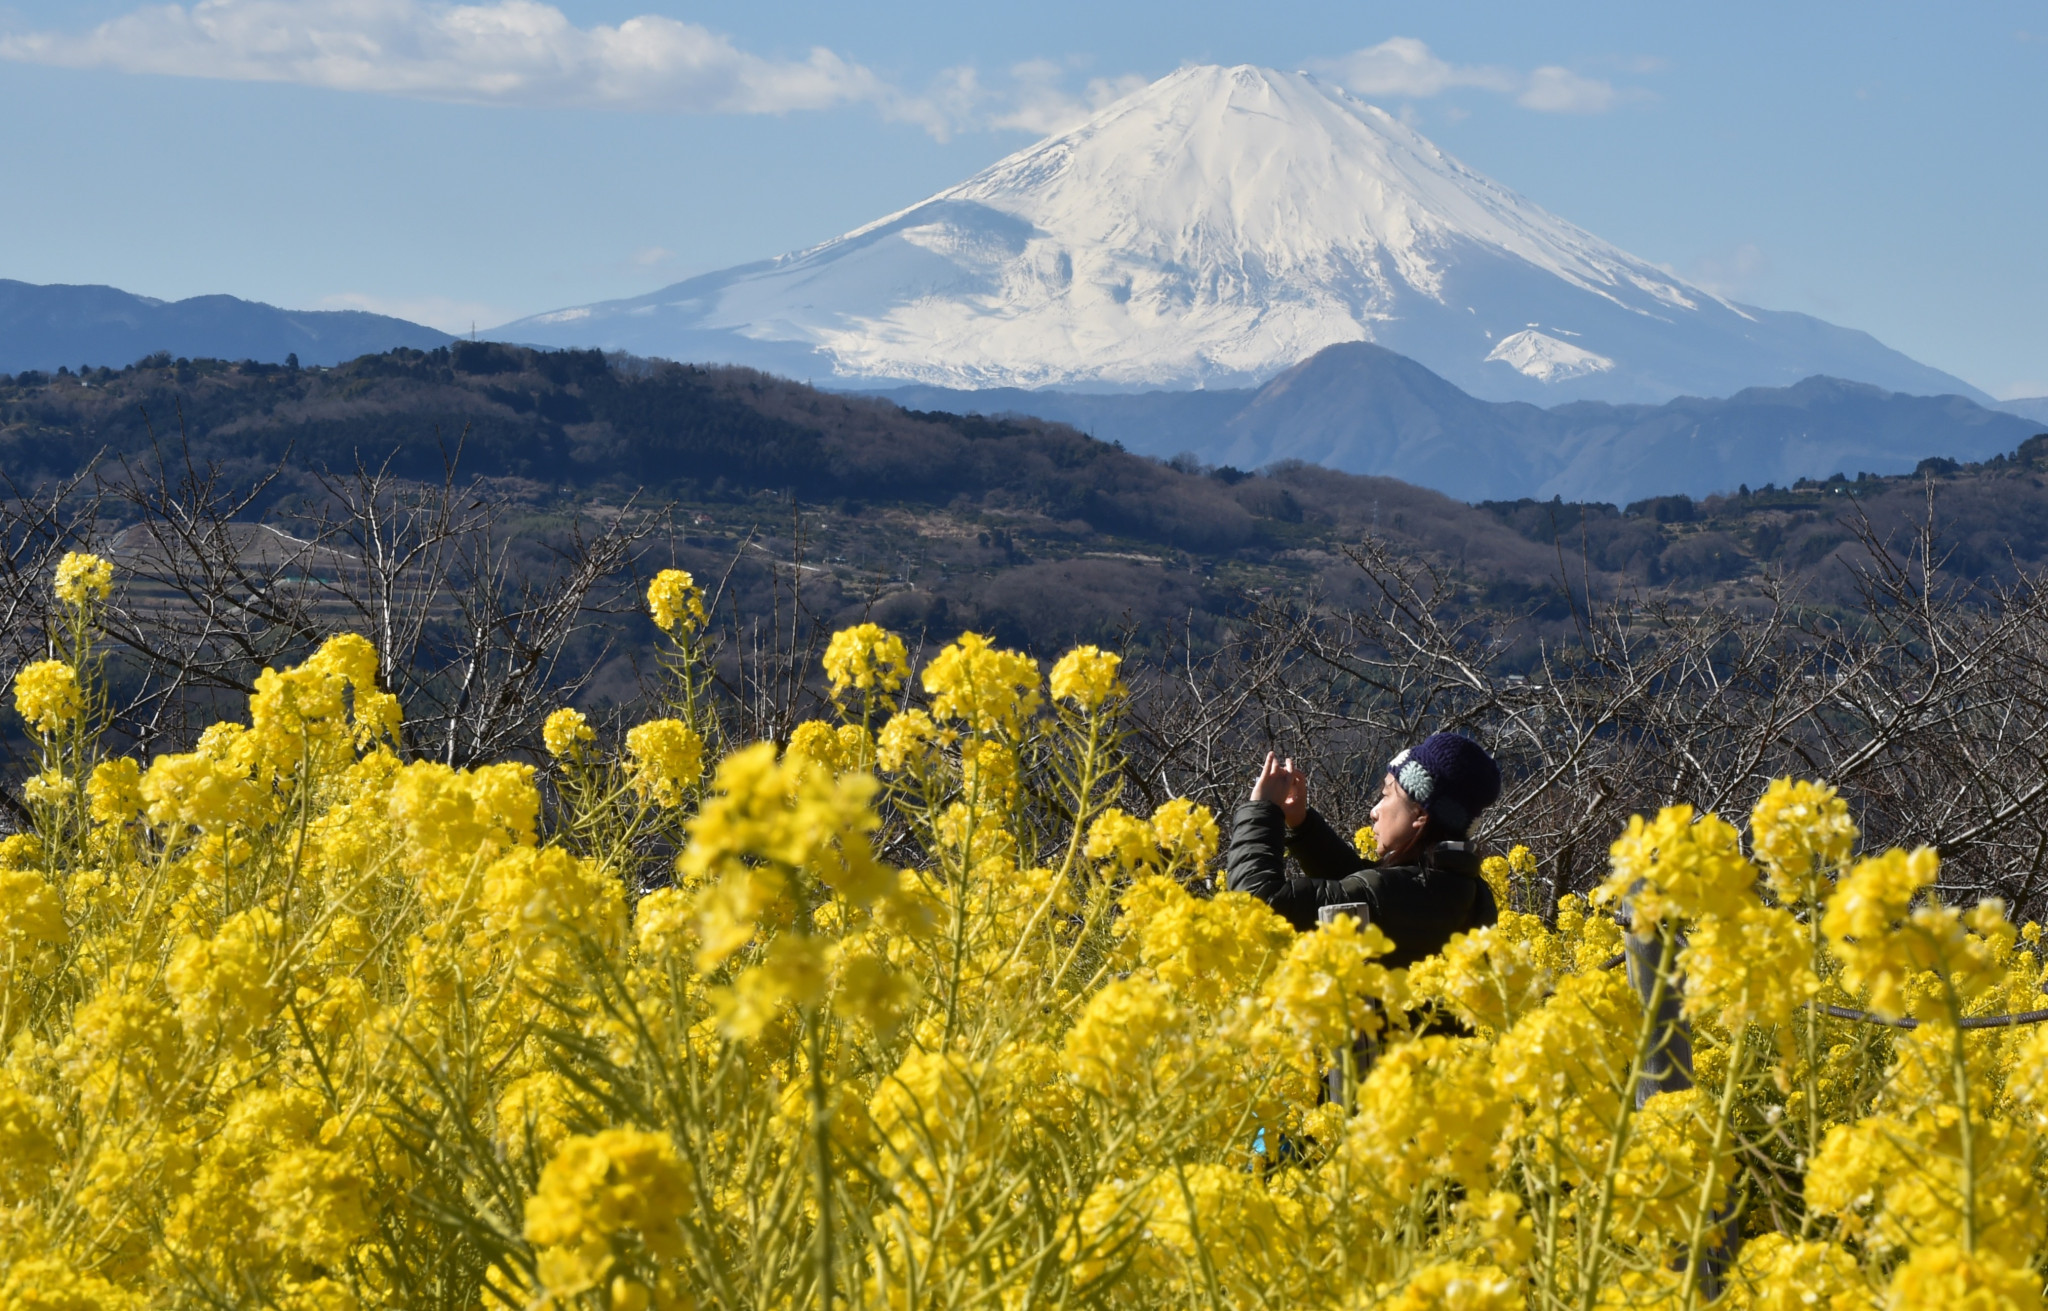 Revised Tokyo 2020 road races set to feature section on Mount Fuji